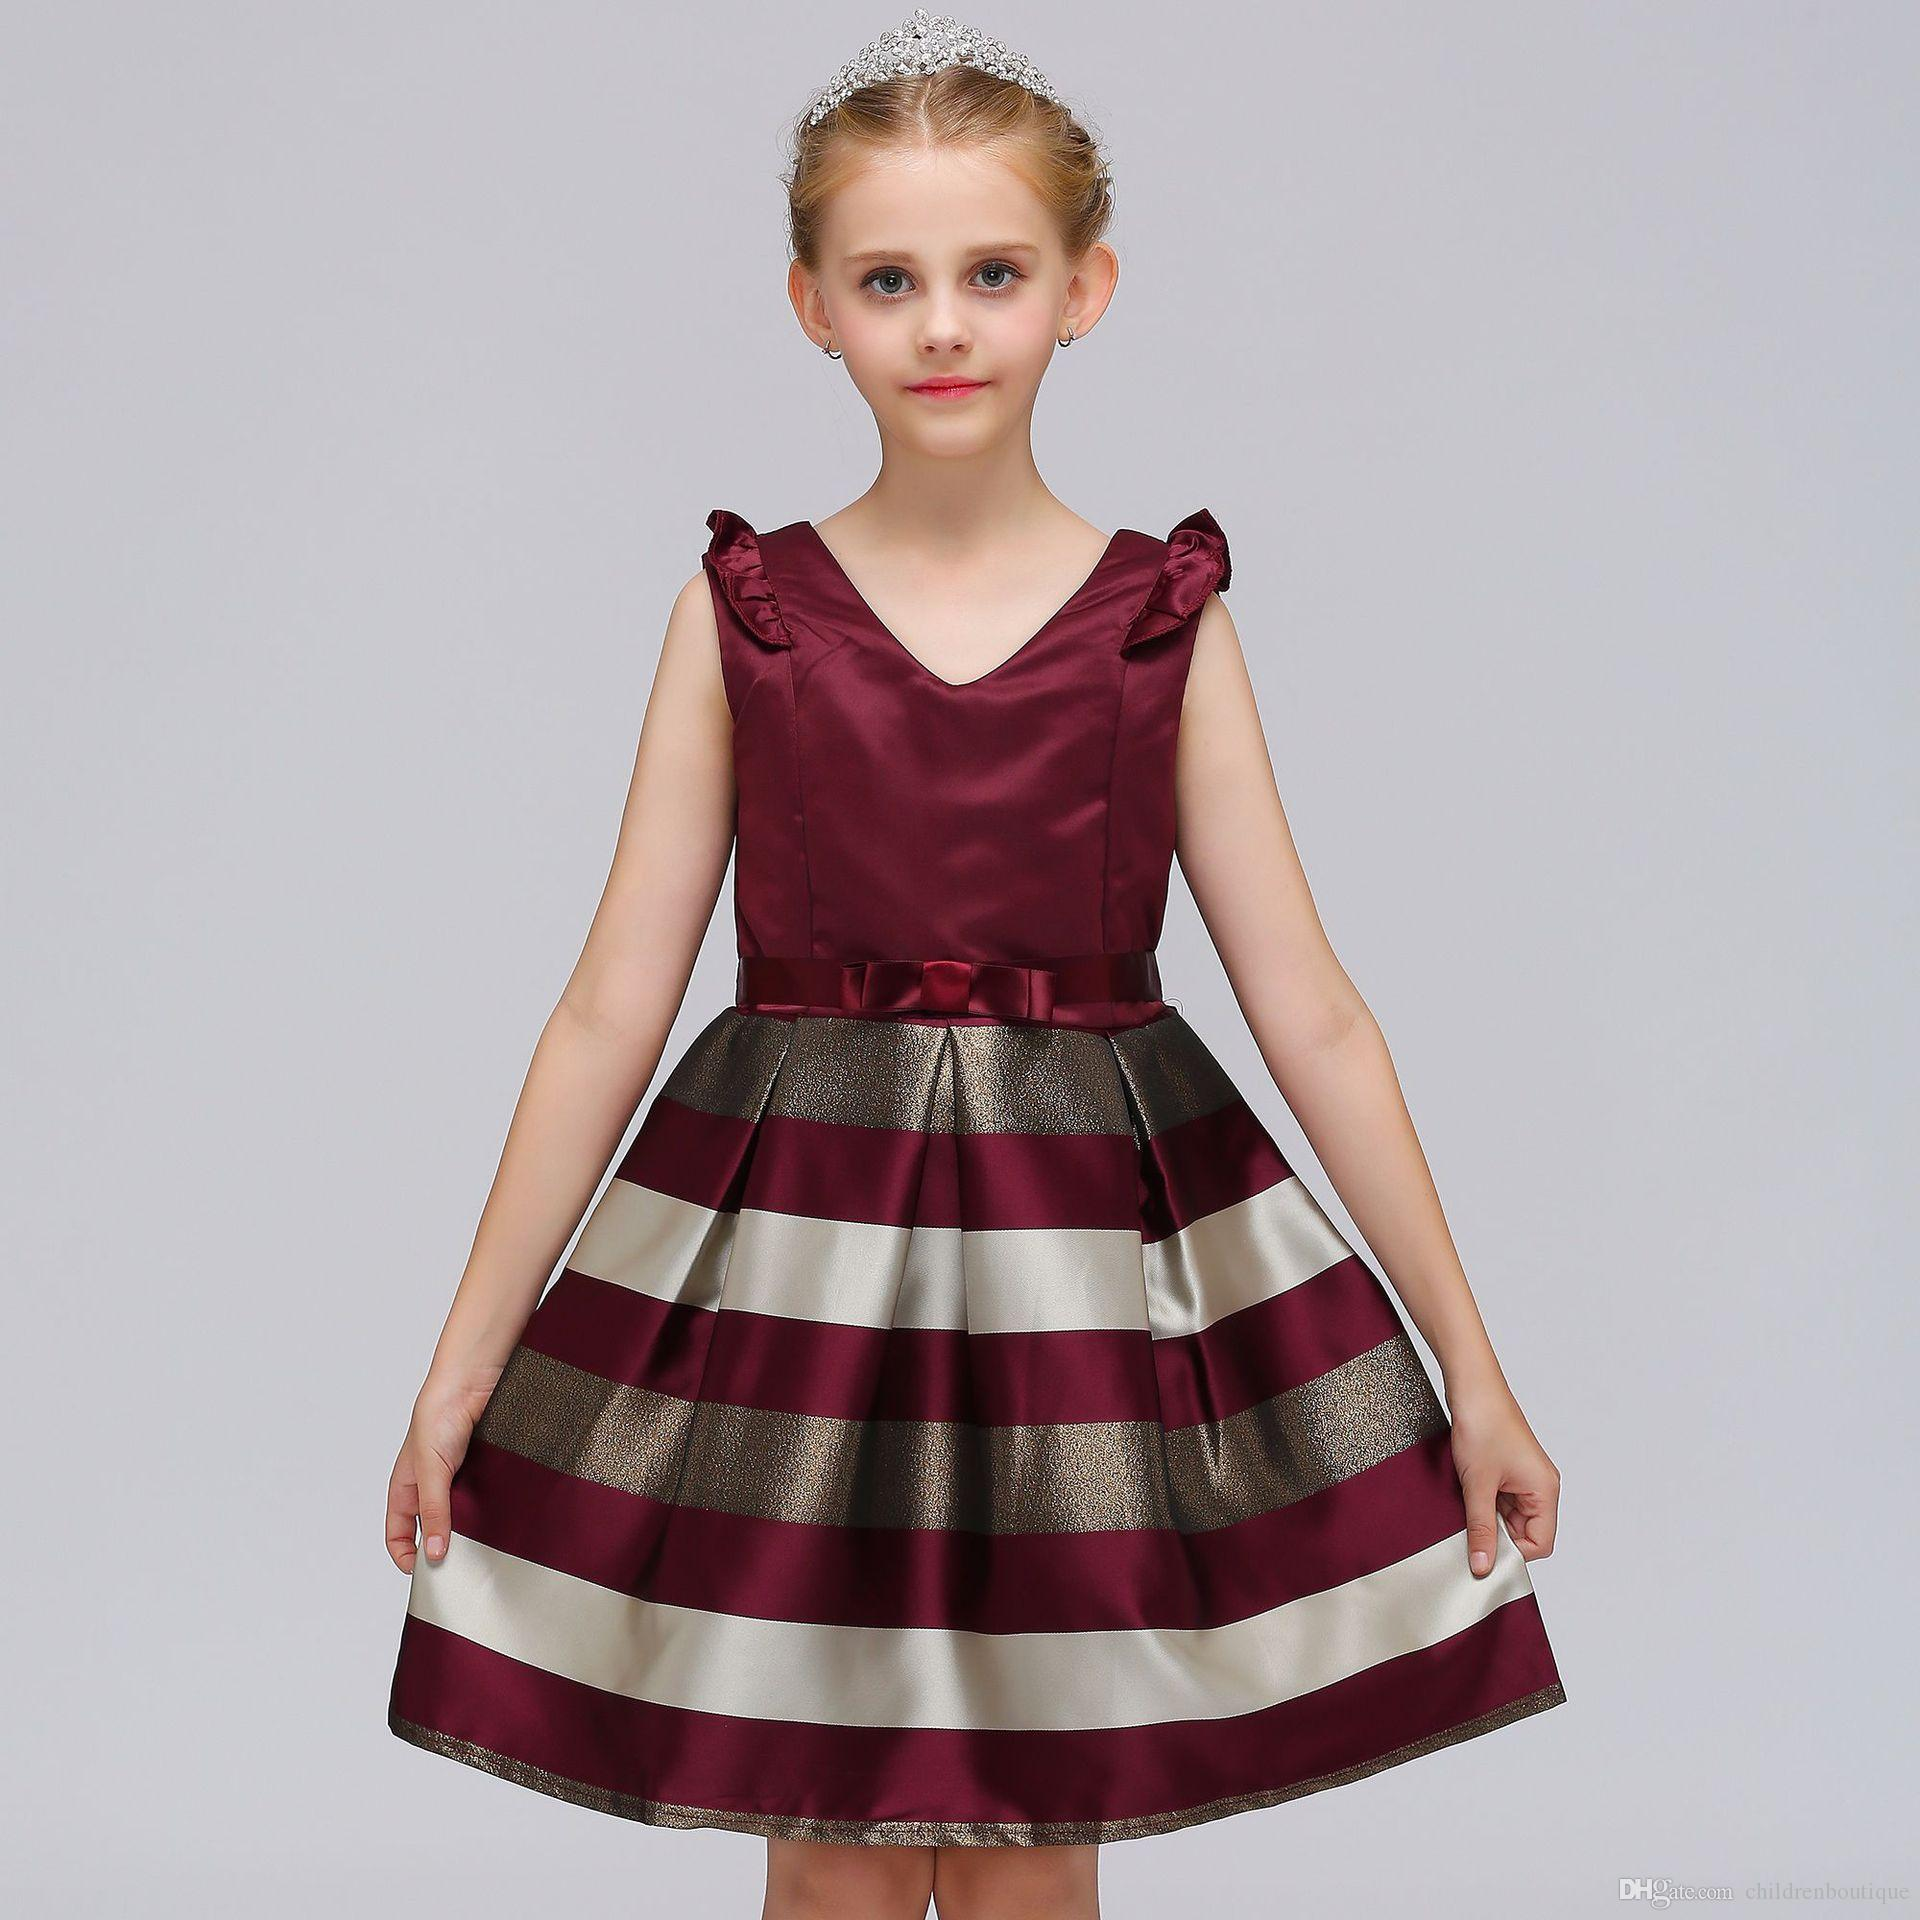 0990de764079 2019 Children Girls Clothing Baby Girls Striped Dress For Girls Formal  Wedding Party Dresses Kids Princess Christmas Dress Costume From  Childrenboutique